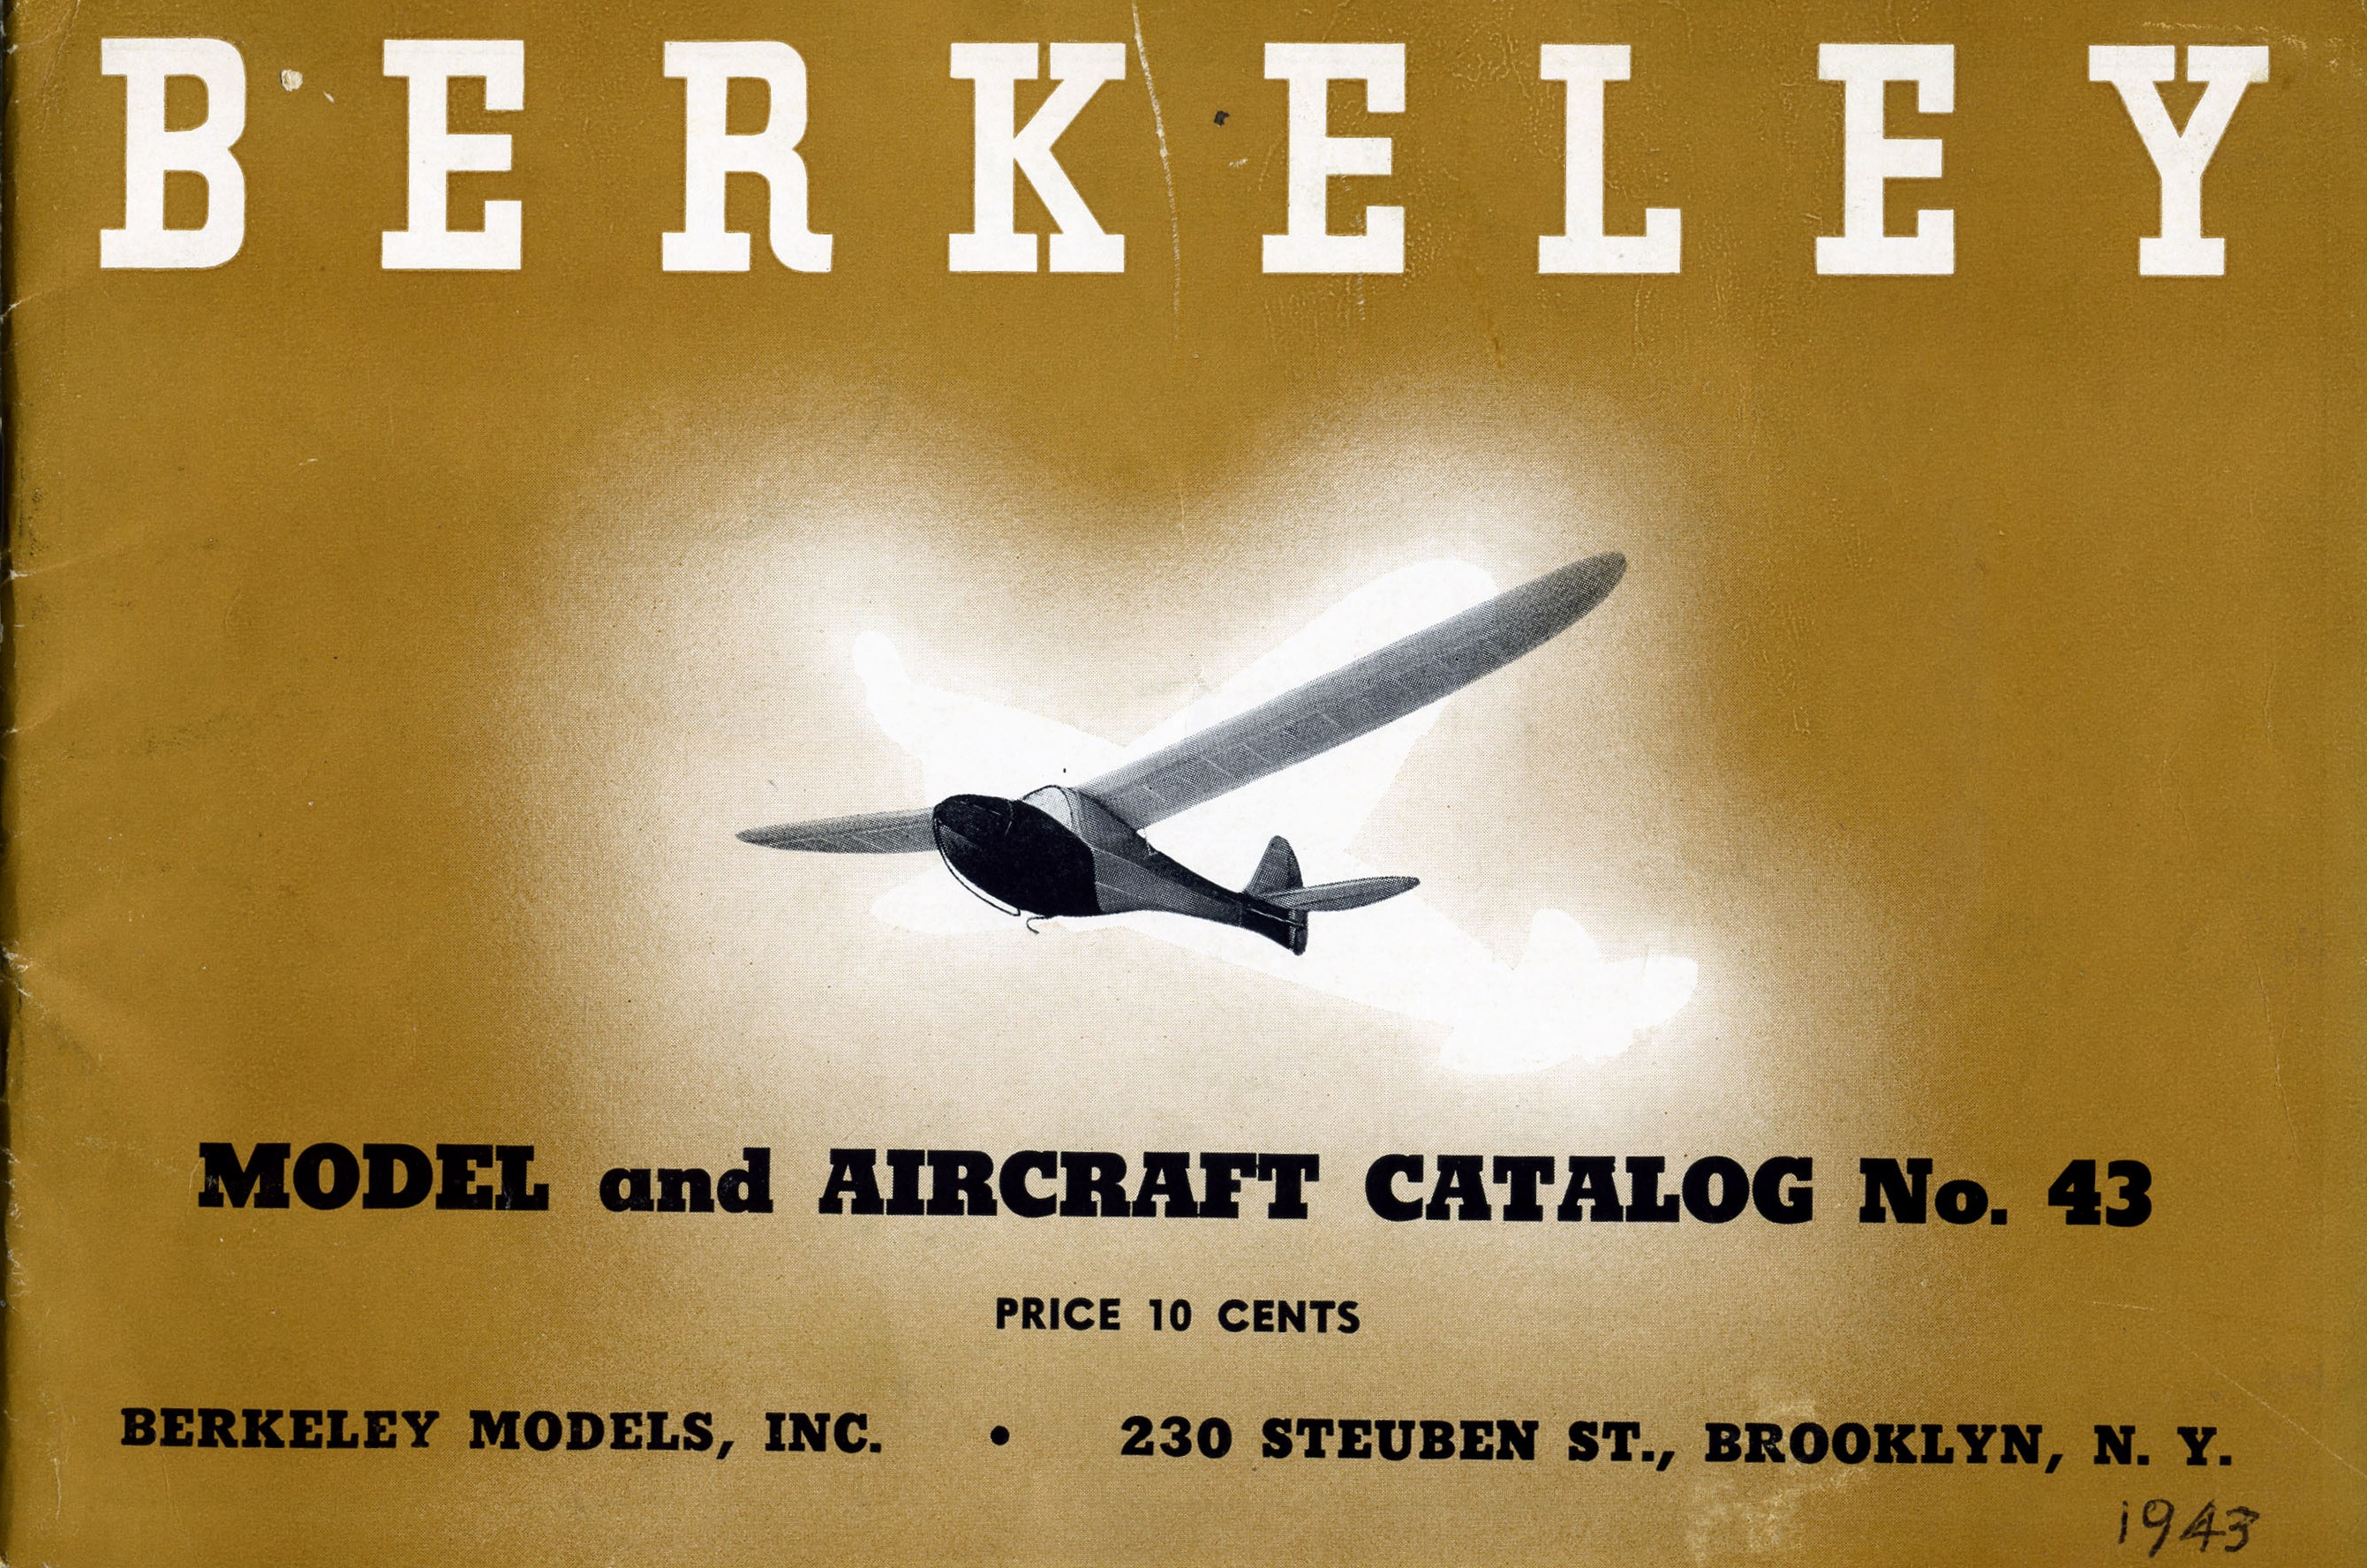 Catalog, Berkeley Models, Inc., 1943, front and page 14. (Source: National Model Aviation Museum Archives, Manufacturers and Companies Collection #0043)